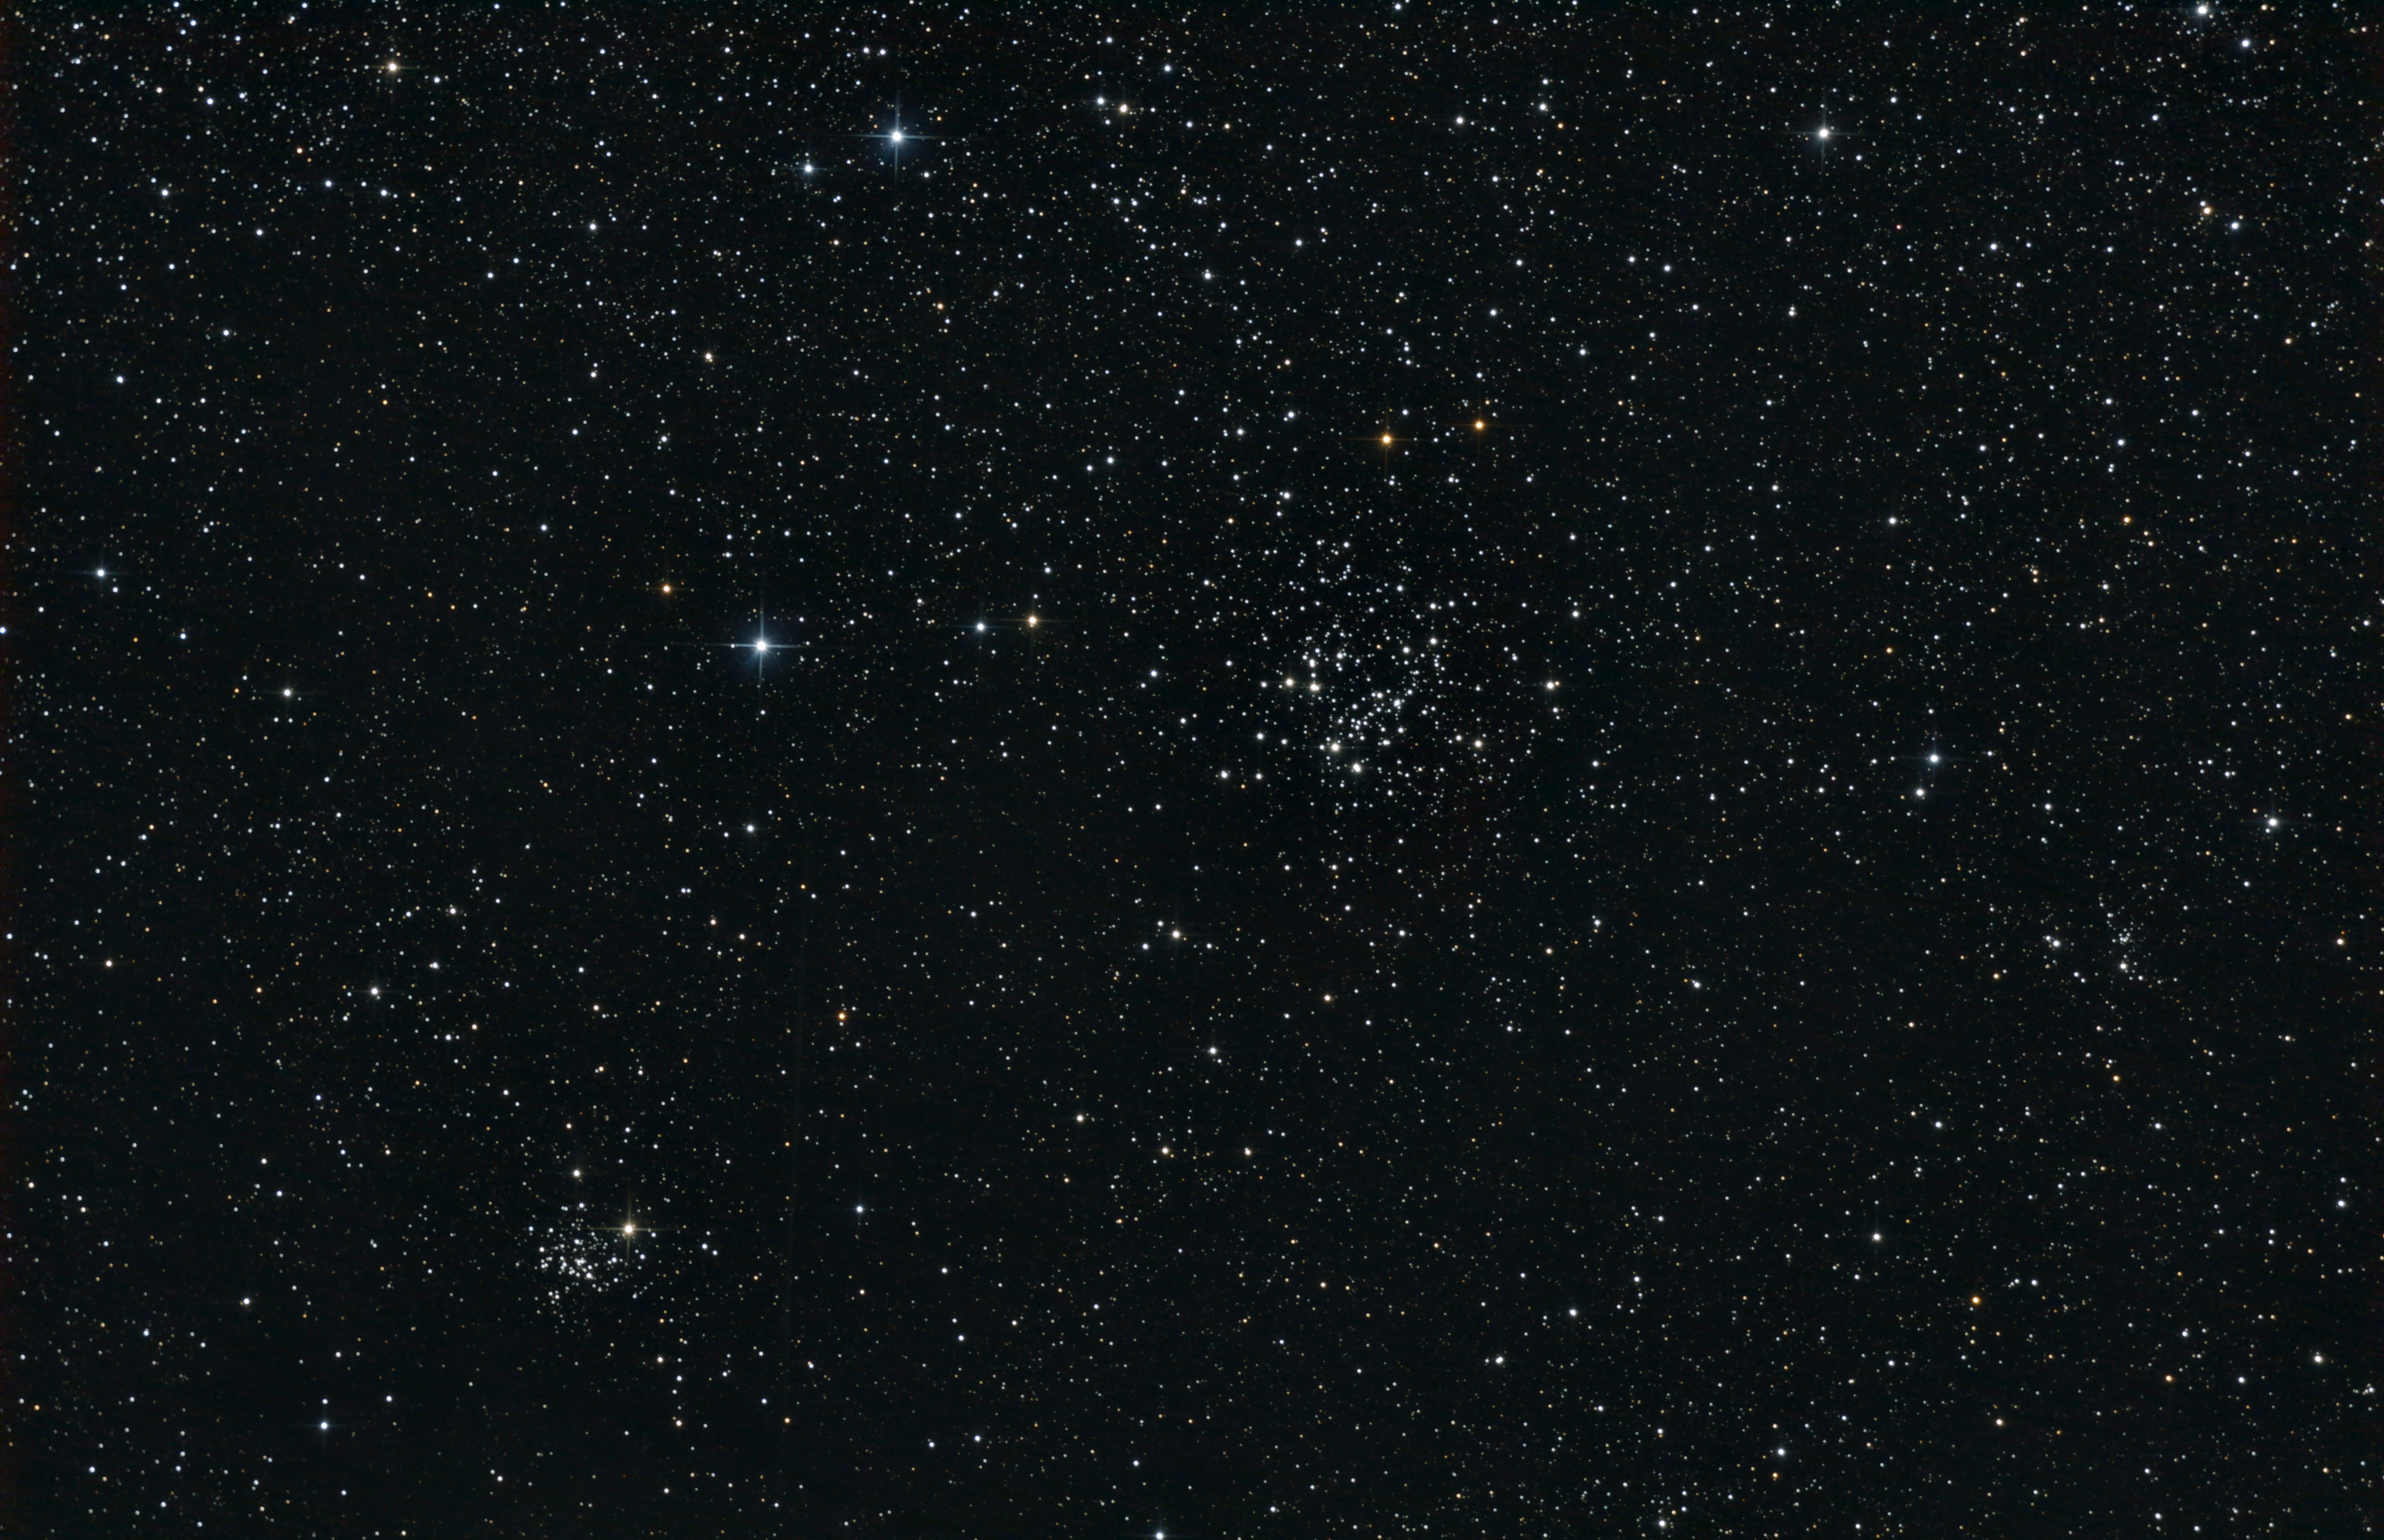 ngc663_stack_12_AbAs